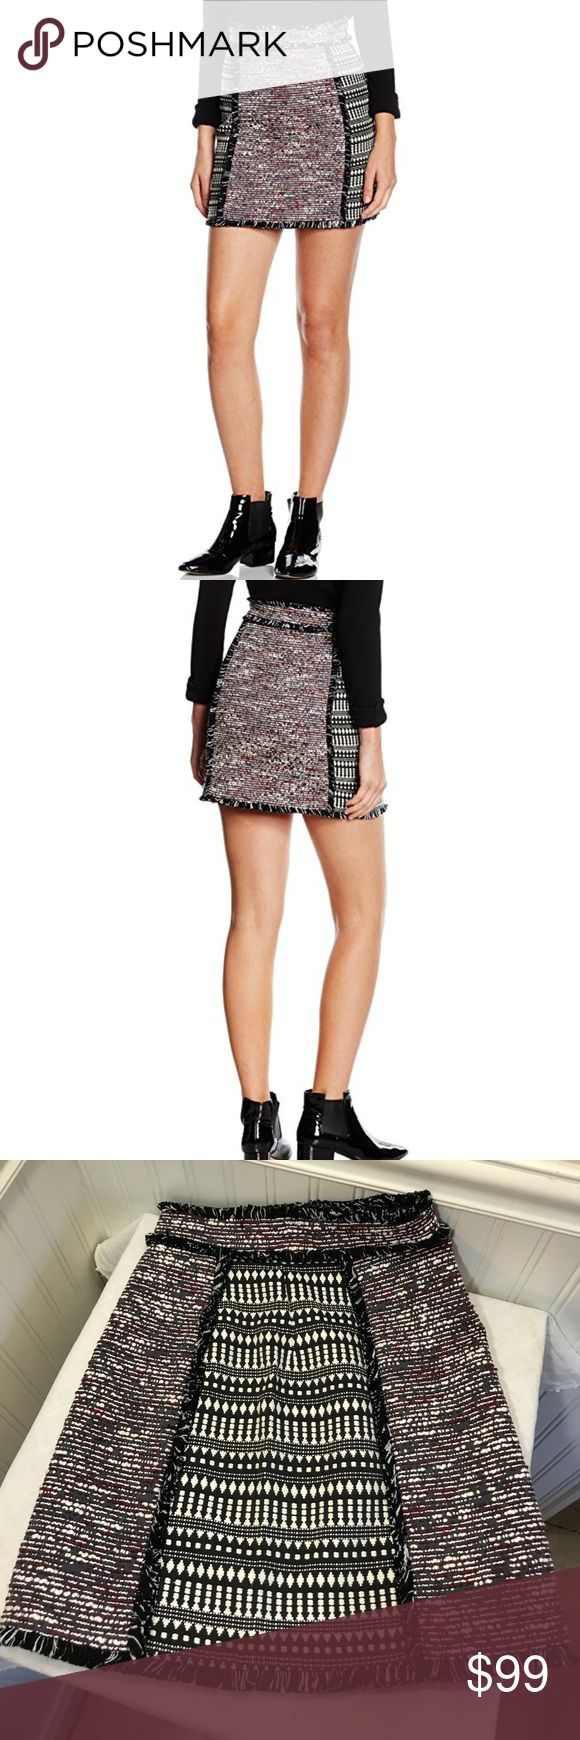 "French Connection Women's Pixel Mix Cotton Mini French Connection Women's Pixel Mix Cotton Mini Tweed Skirt, Black/Multi. 60% Polyester 40% Viscose. Medium weight fabric. Size 0 is 24"" waist17"" long💕 Size 10 is 31"" waist 18"" long. French Connection Skirts Mini"